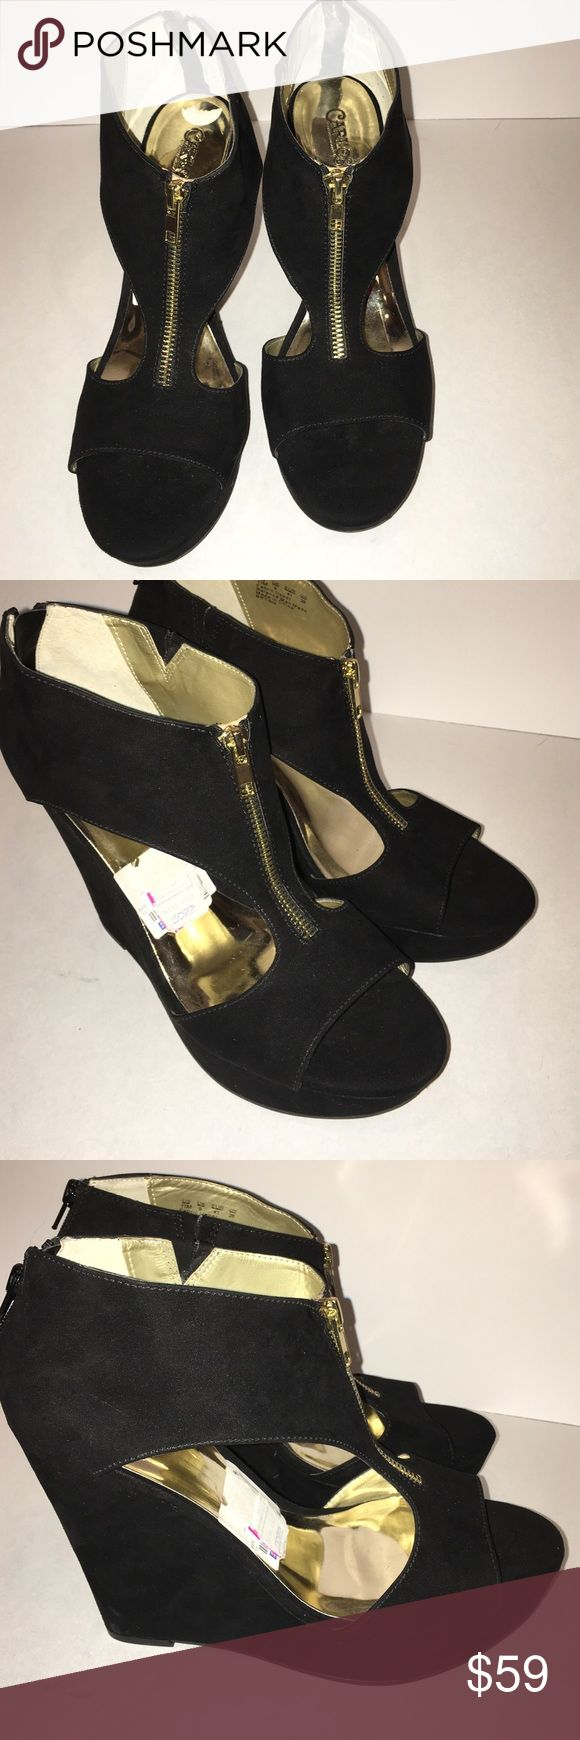 NWT Carlos by Carlos Santana Black Suede Platforms NWT but I do not have a box for them. The heels are 5 inches high. Black suede. Some elastic in the top to help the shoe stretch. Carlos Santana Shoes Platforms